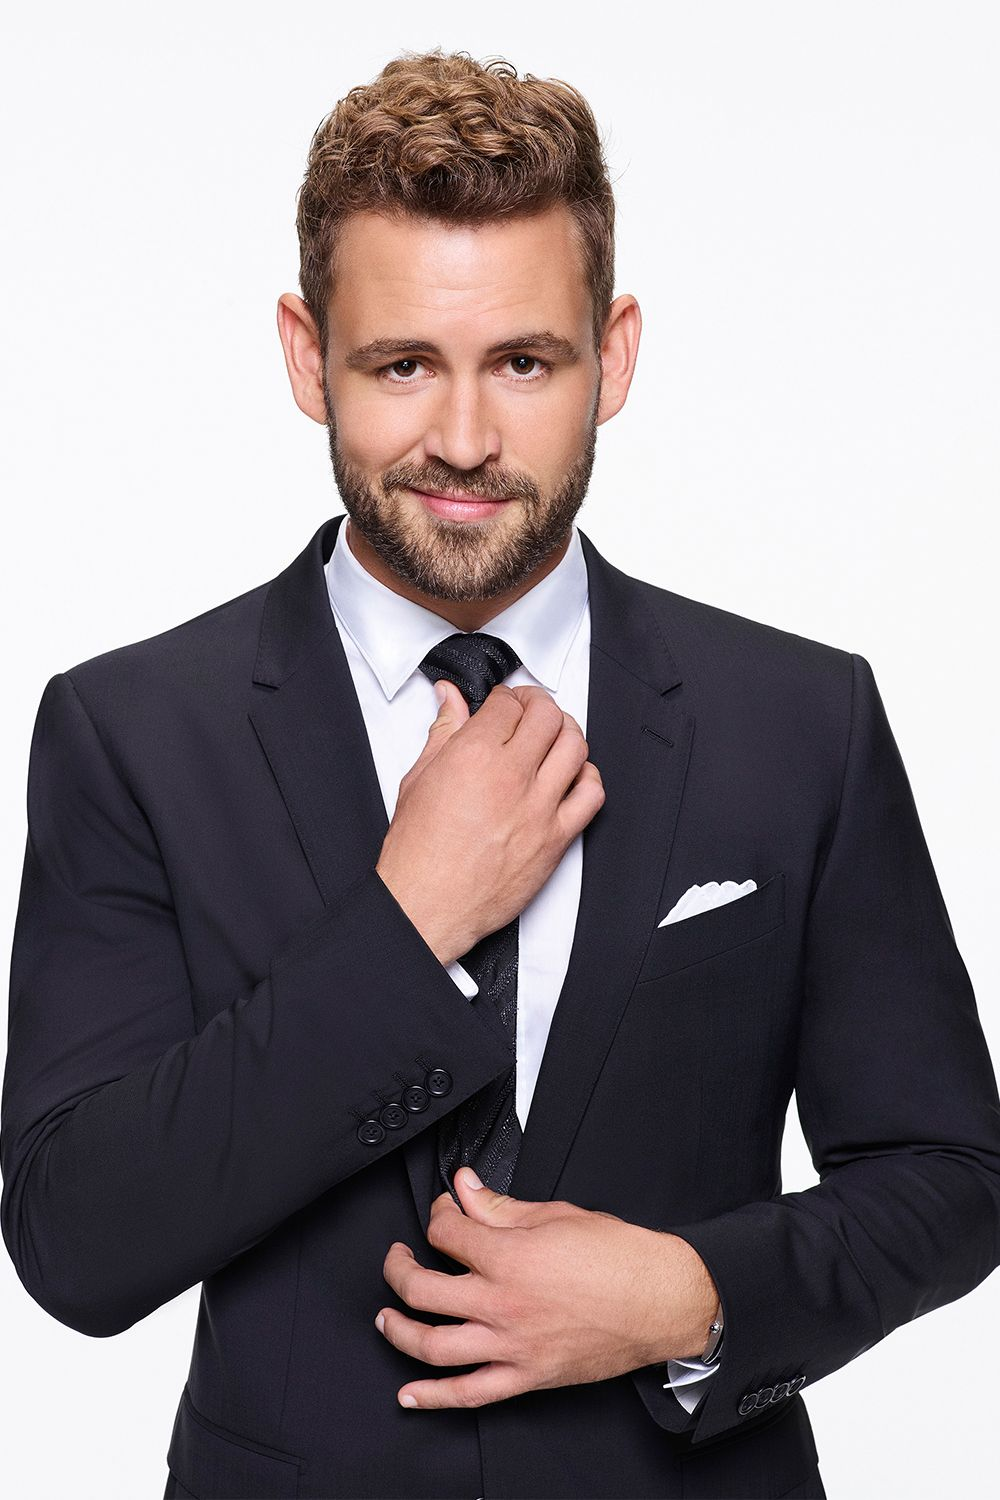 Nick Viall ('The Bachelor' Season 21) Honestly, the fact that Nick Viall has appeared on four seasons of The Bachelor franchise is enough to make him controversial (to wit: he was the runner-up on both Andi Dorfman's and Kaitlyn Bristowe's seasons of The Bachelorette and appeared on Bachelor in Paradise before becoming The Bachelor in 2017). But, Nick's shadiest move was definitely blasting Andi on After the Final Rose .